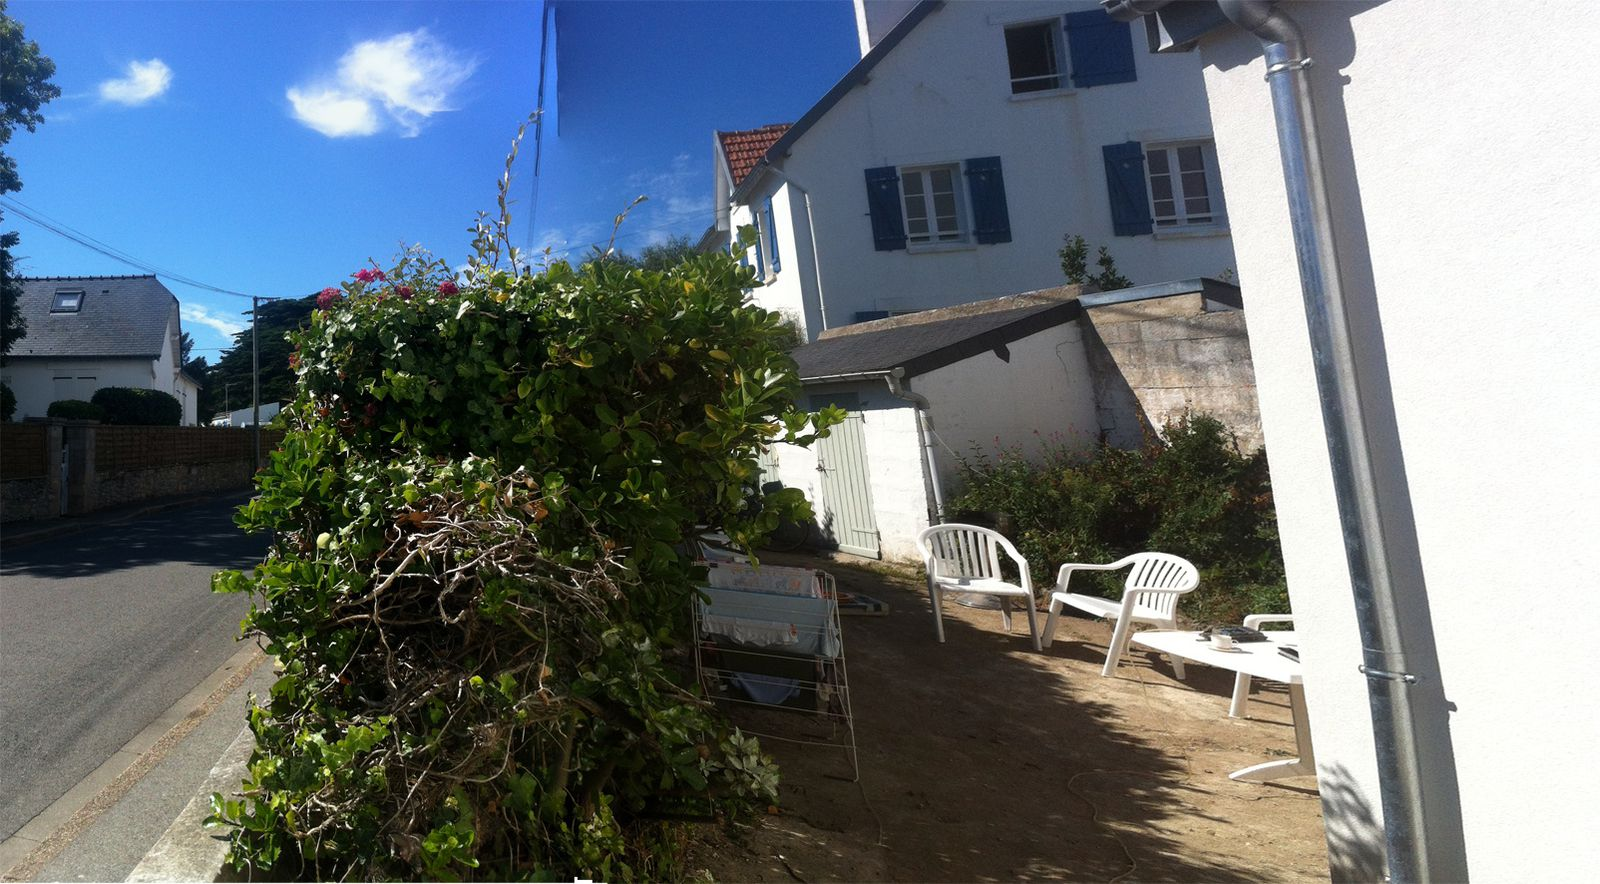 Am nagement d 39 un petit terrain quiberon maezad for Amenagement exterieur petit terrain